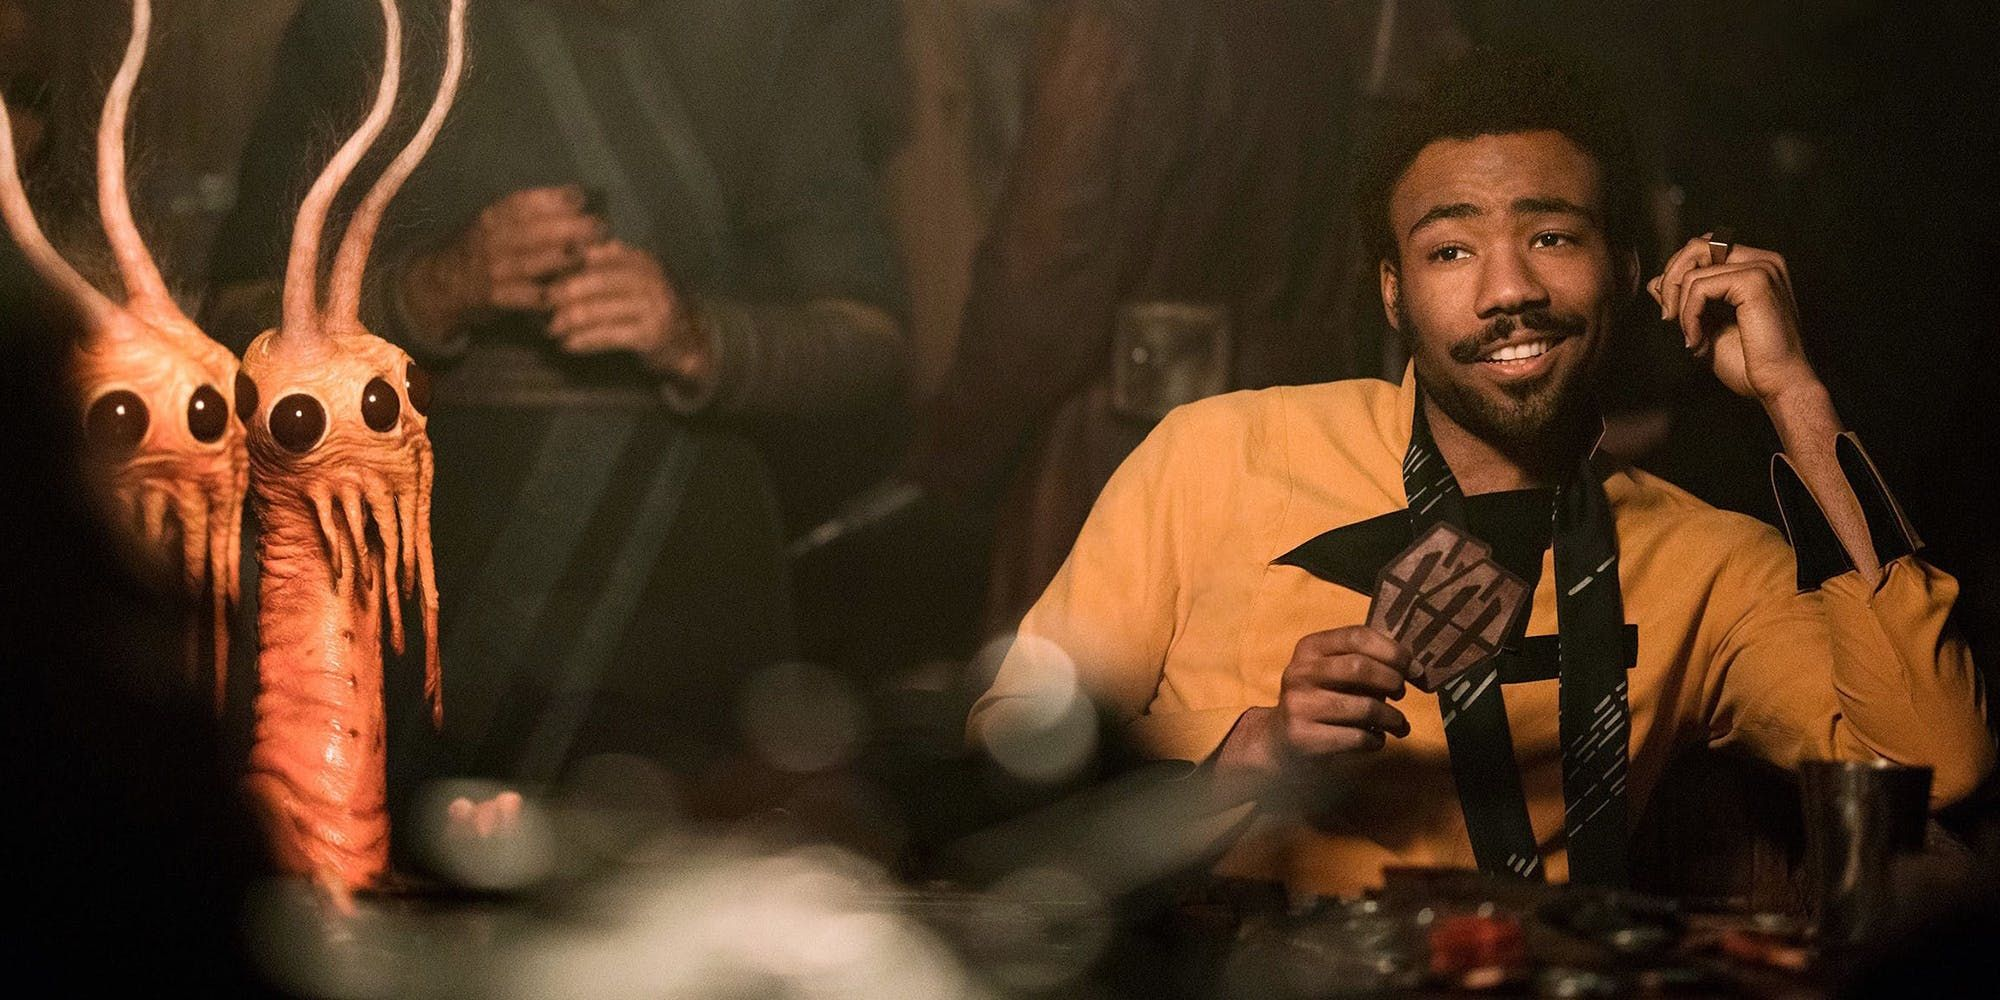 A Lando Calrissian 'Star Wars' Spinoff Is Next, Says Lucasfilm